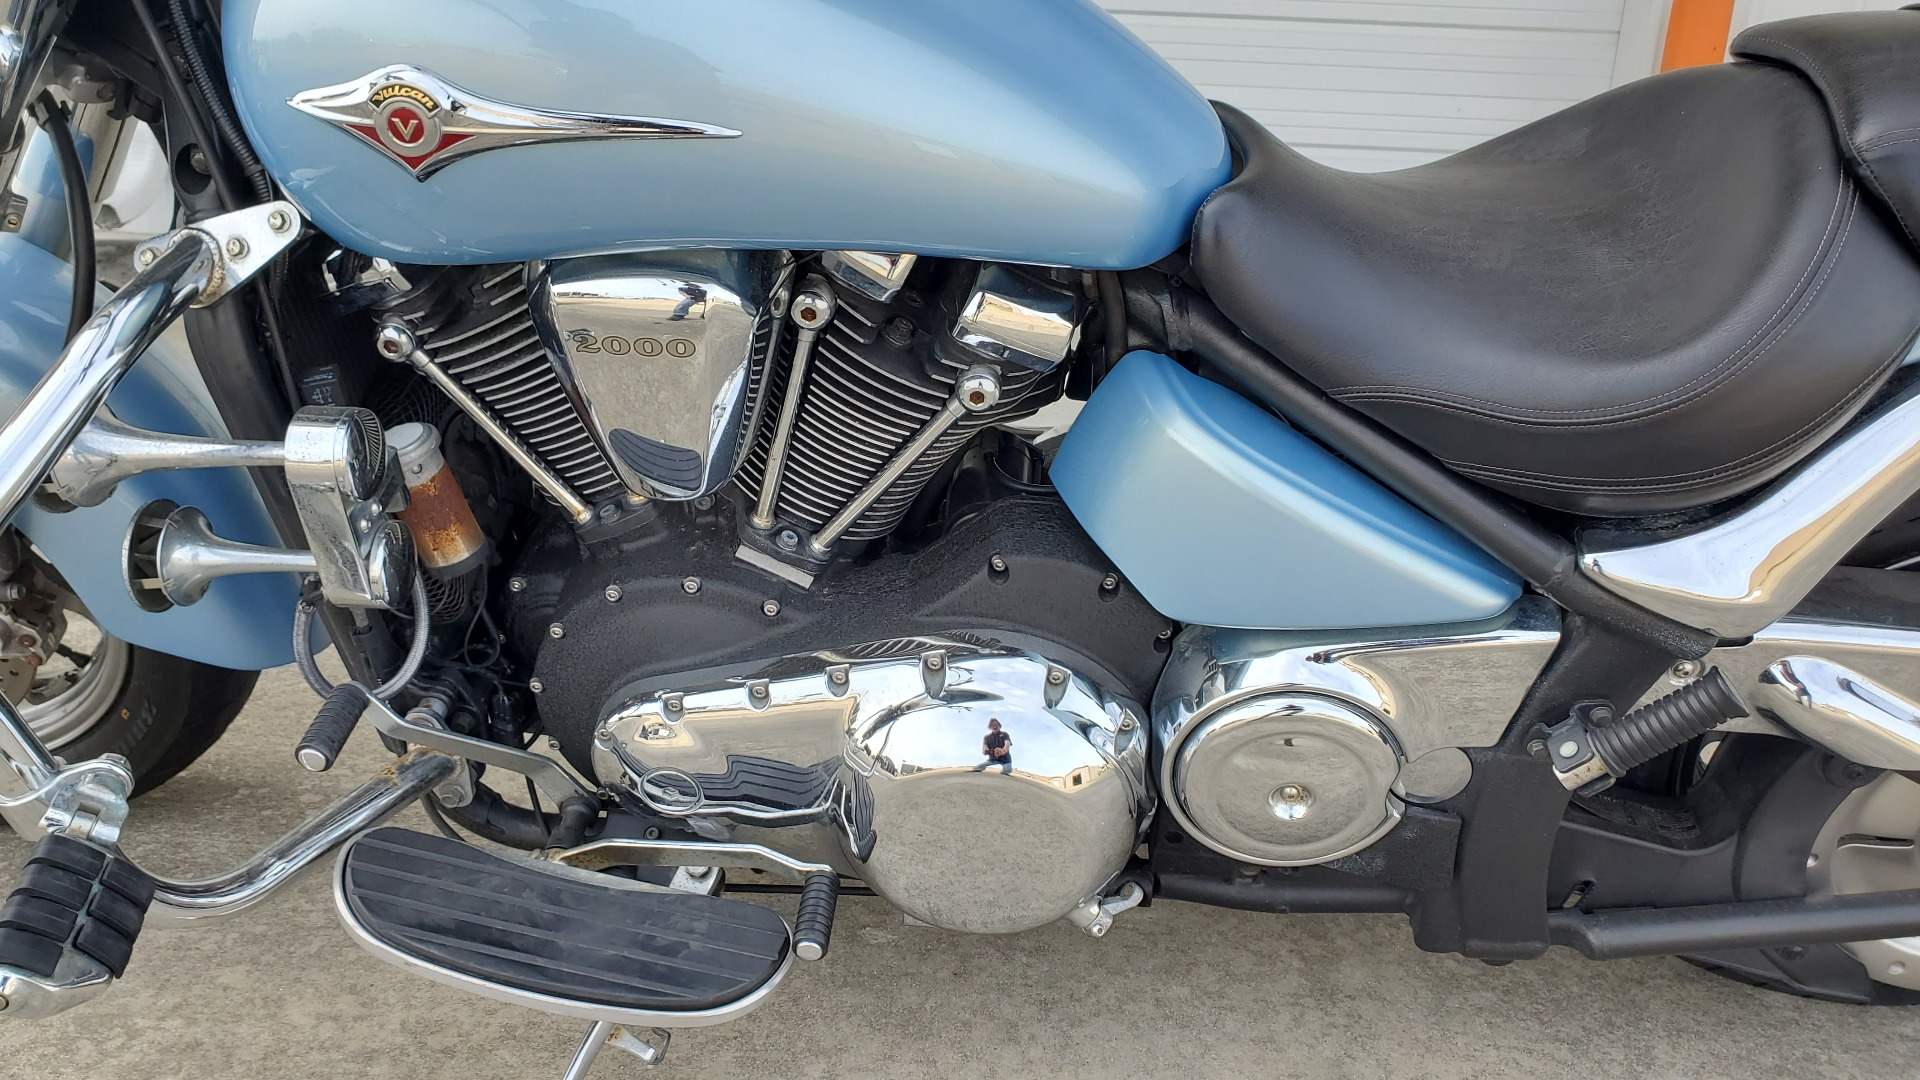 2004 kawasaki vulcan 2000 for sale near me - Photo 7